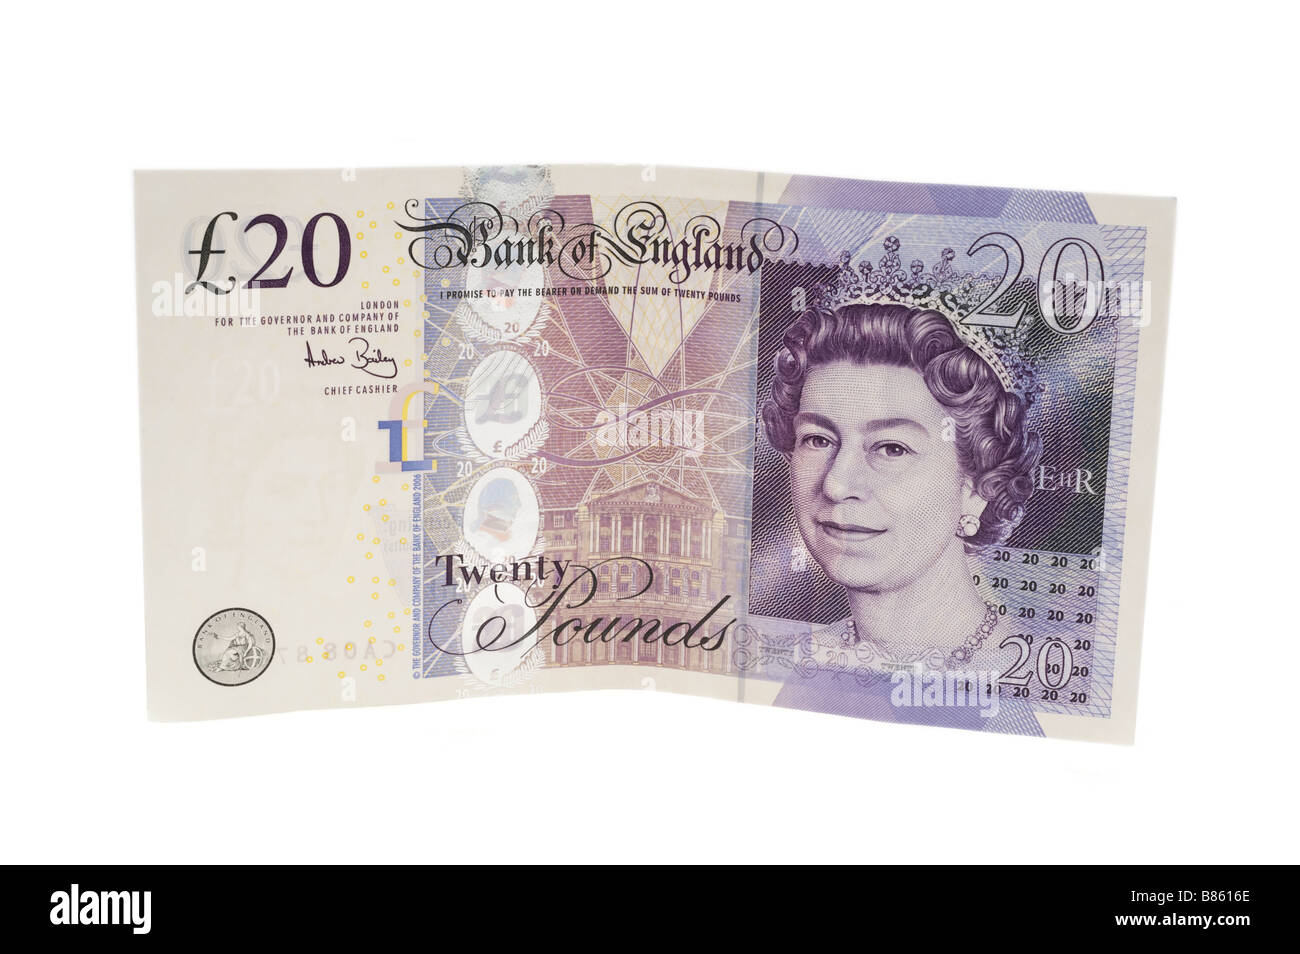 Bank of England twenty pound note.  Editorial use only - Stock Image